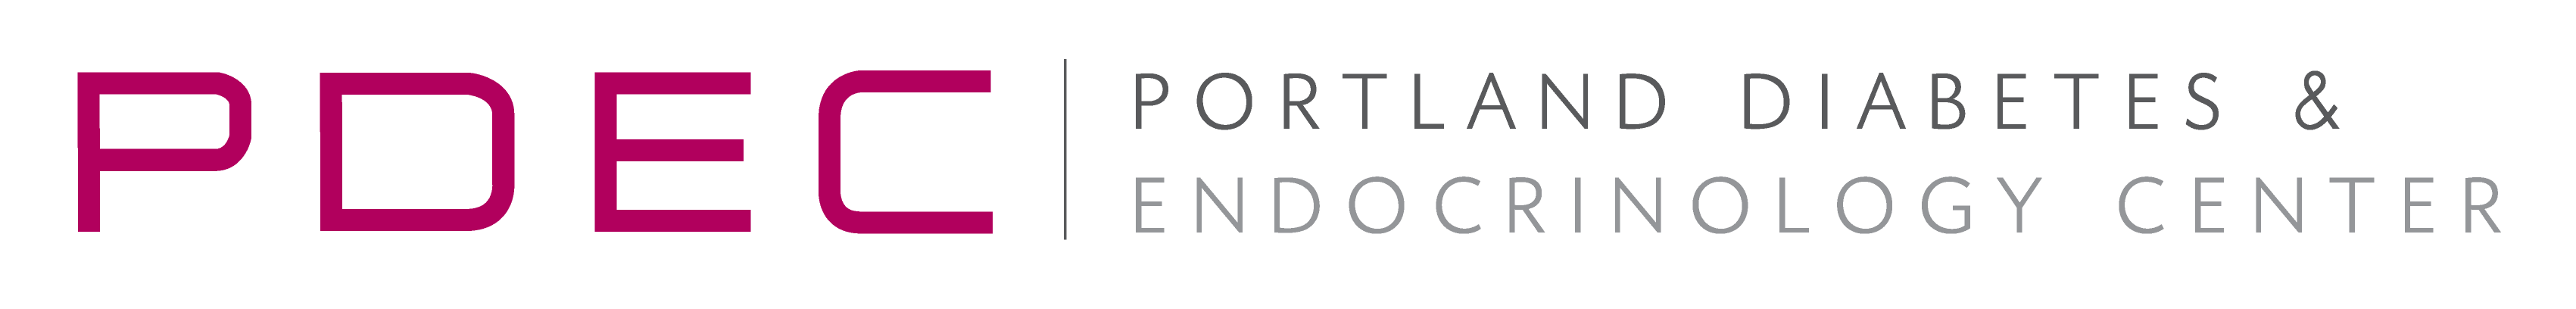 Portland Diabetes & Endocrinology Center